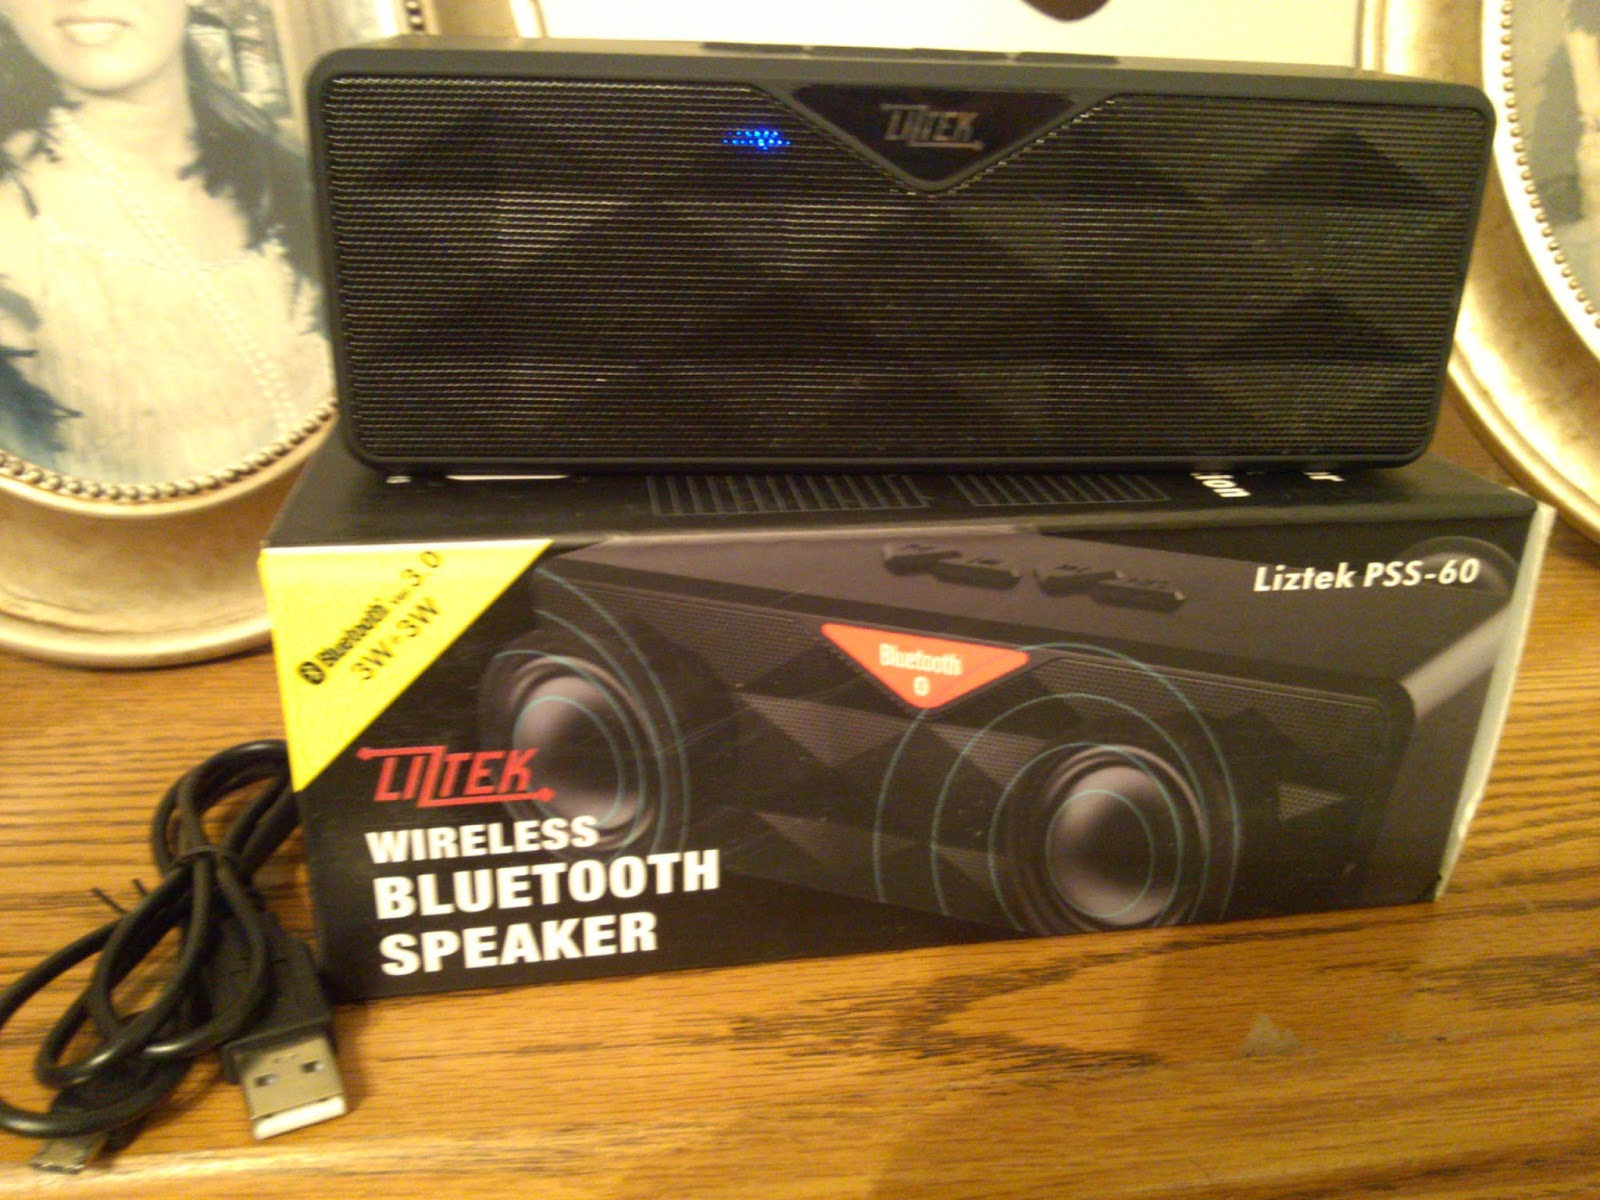 Liztek Ultra-Portable Wireless Bluetooth Speaker Review